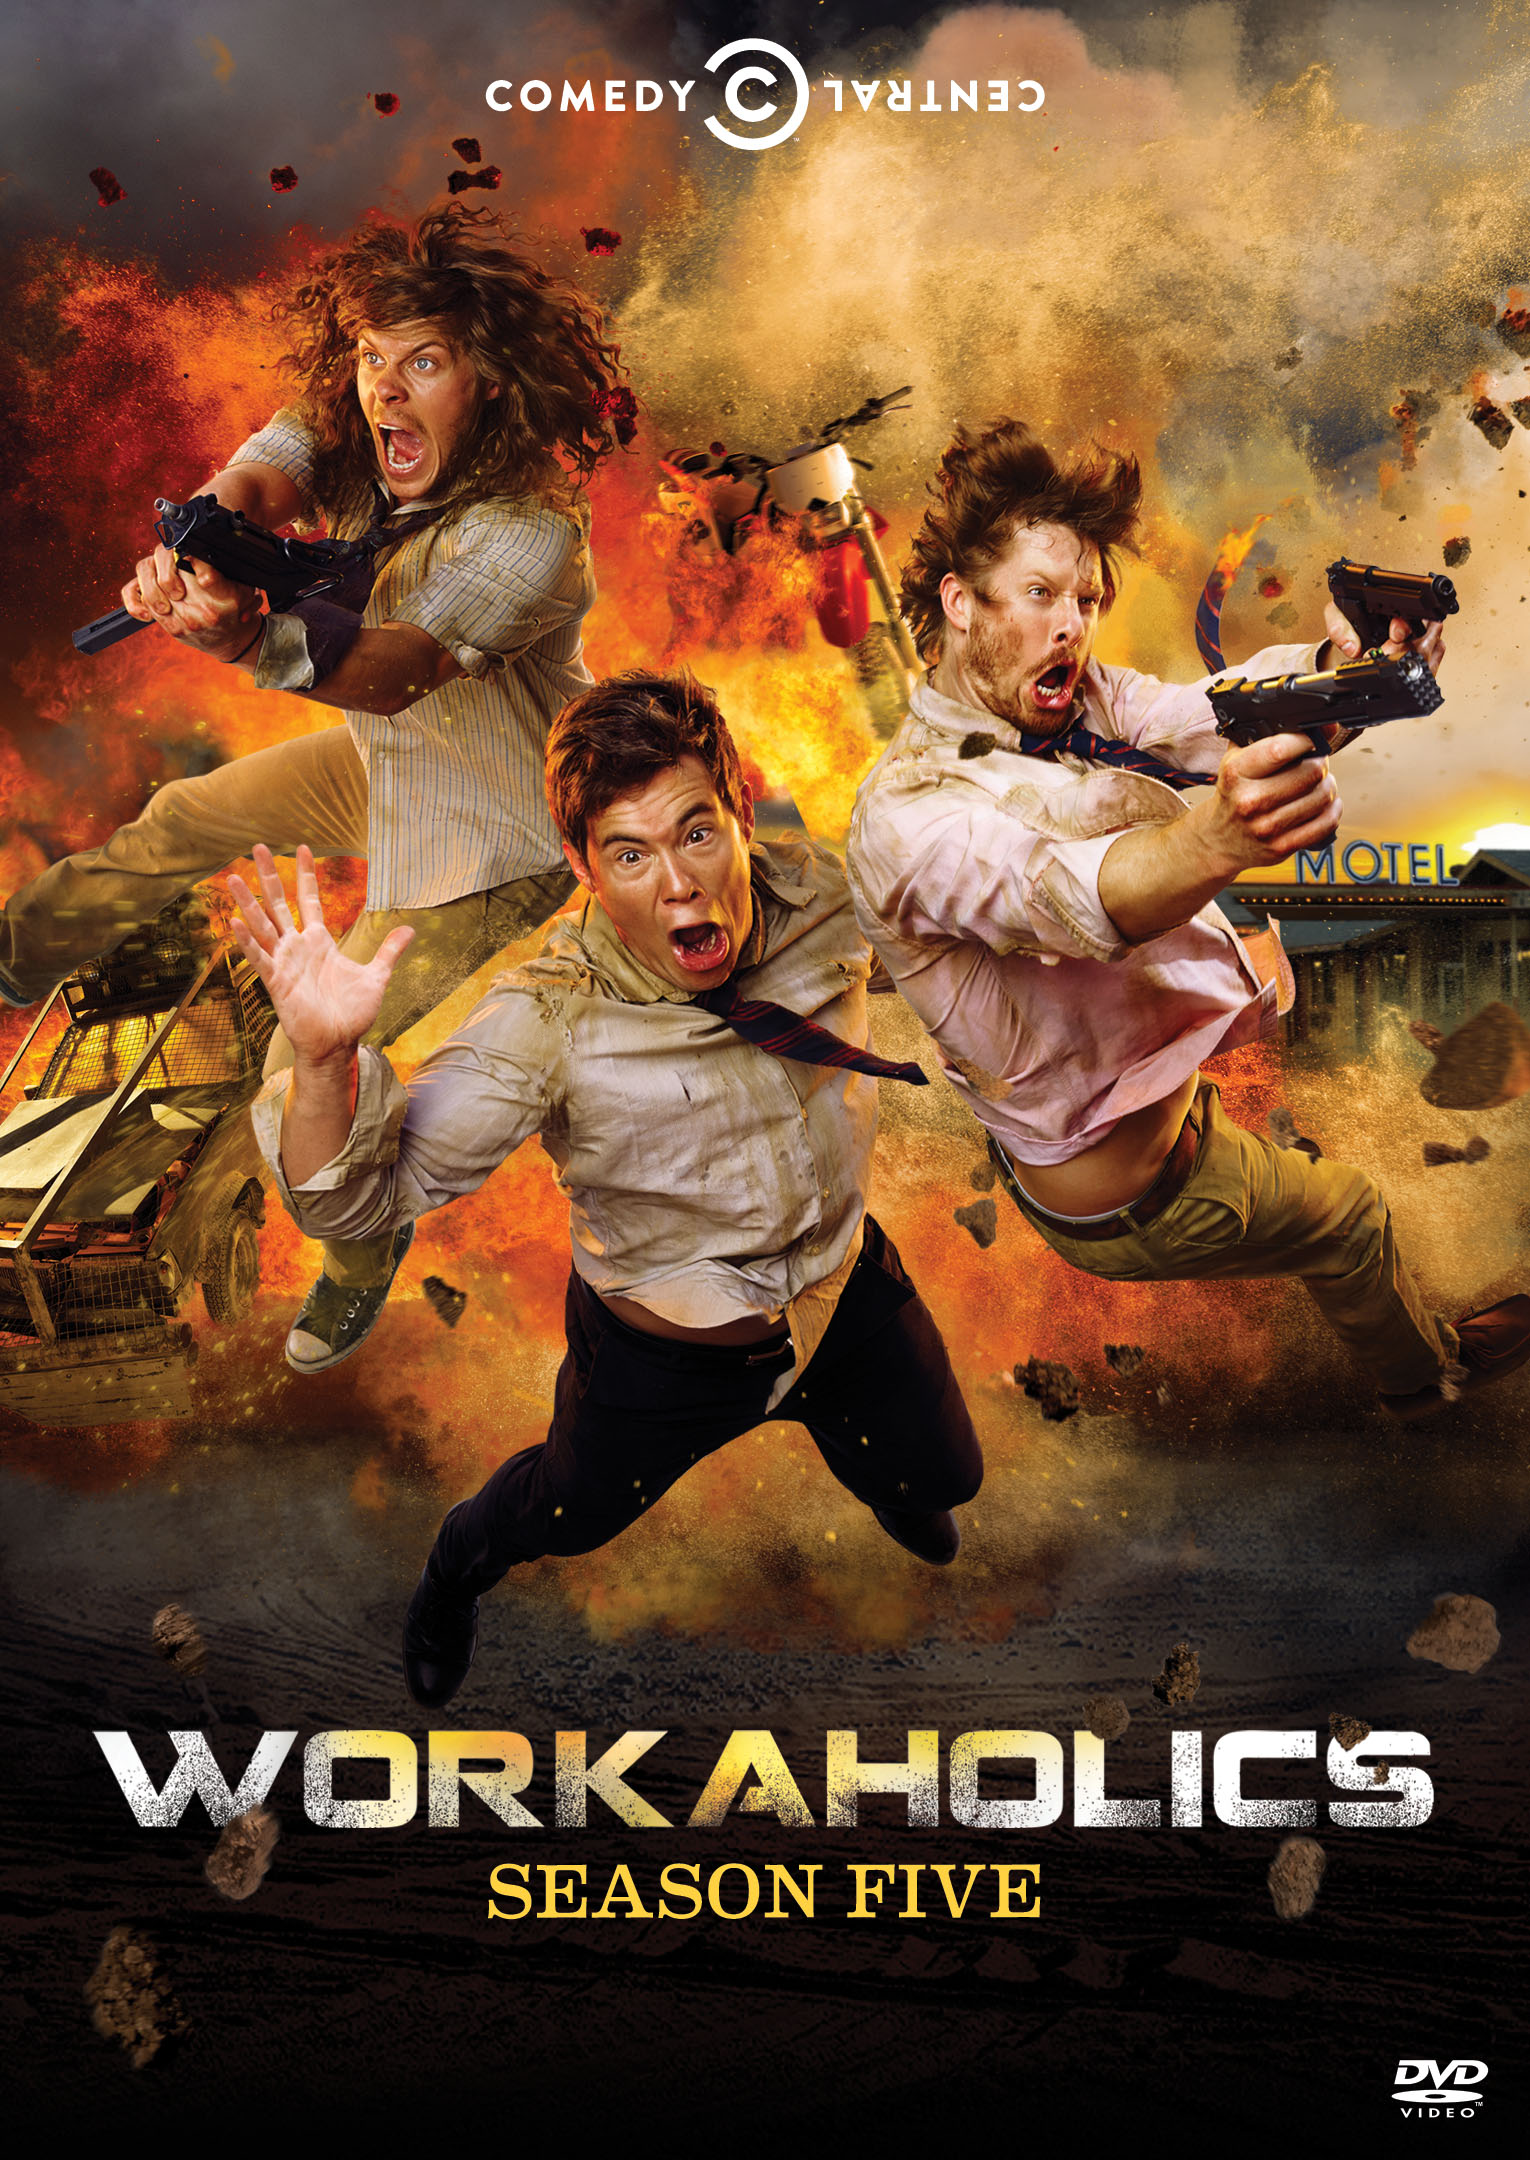 Workaholics Season 5 on Blu-ray and DVD